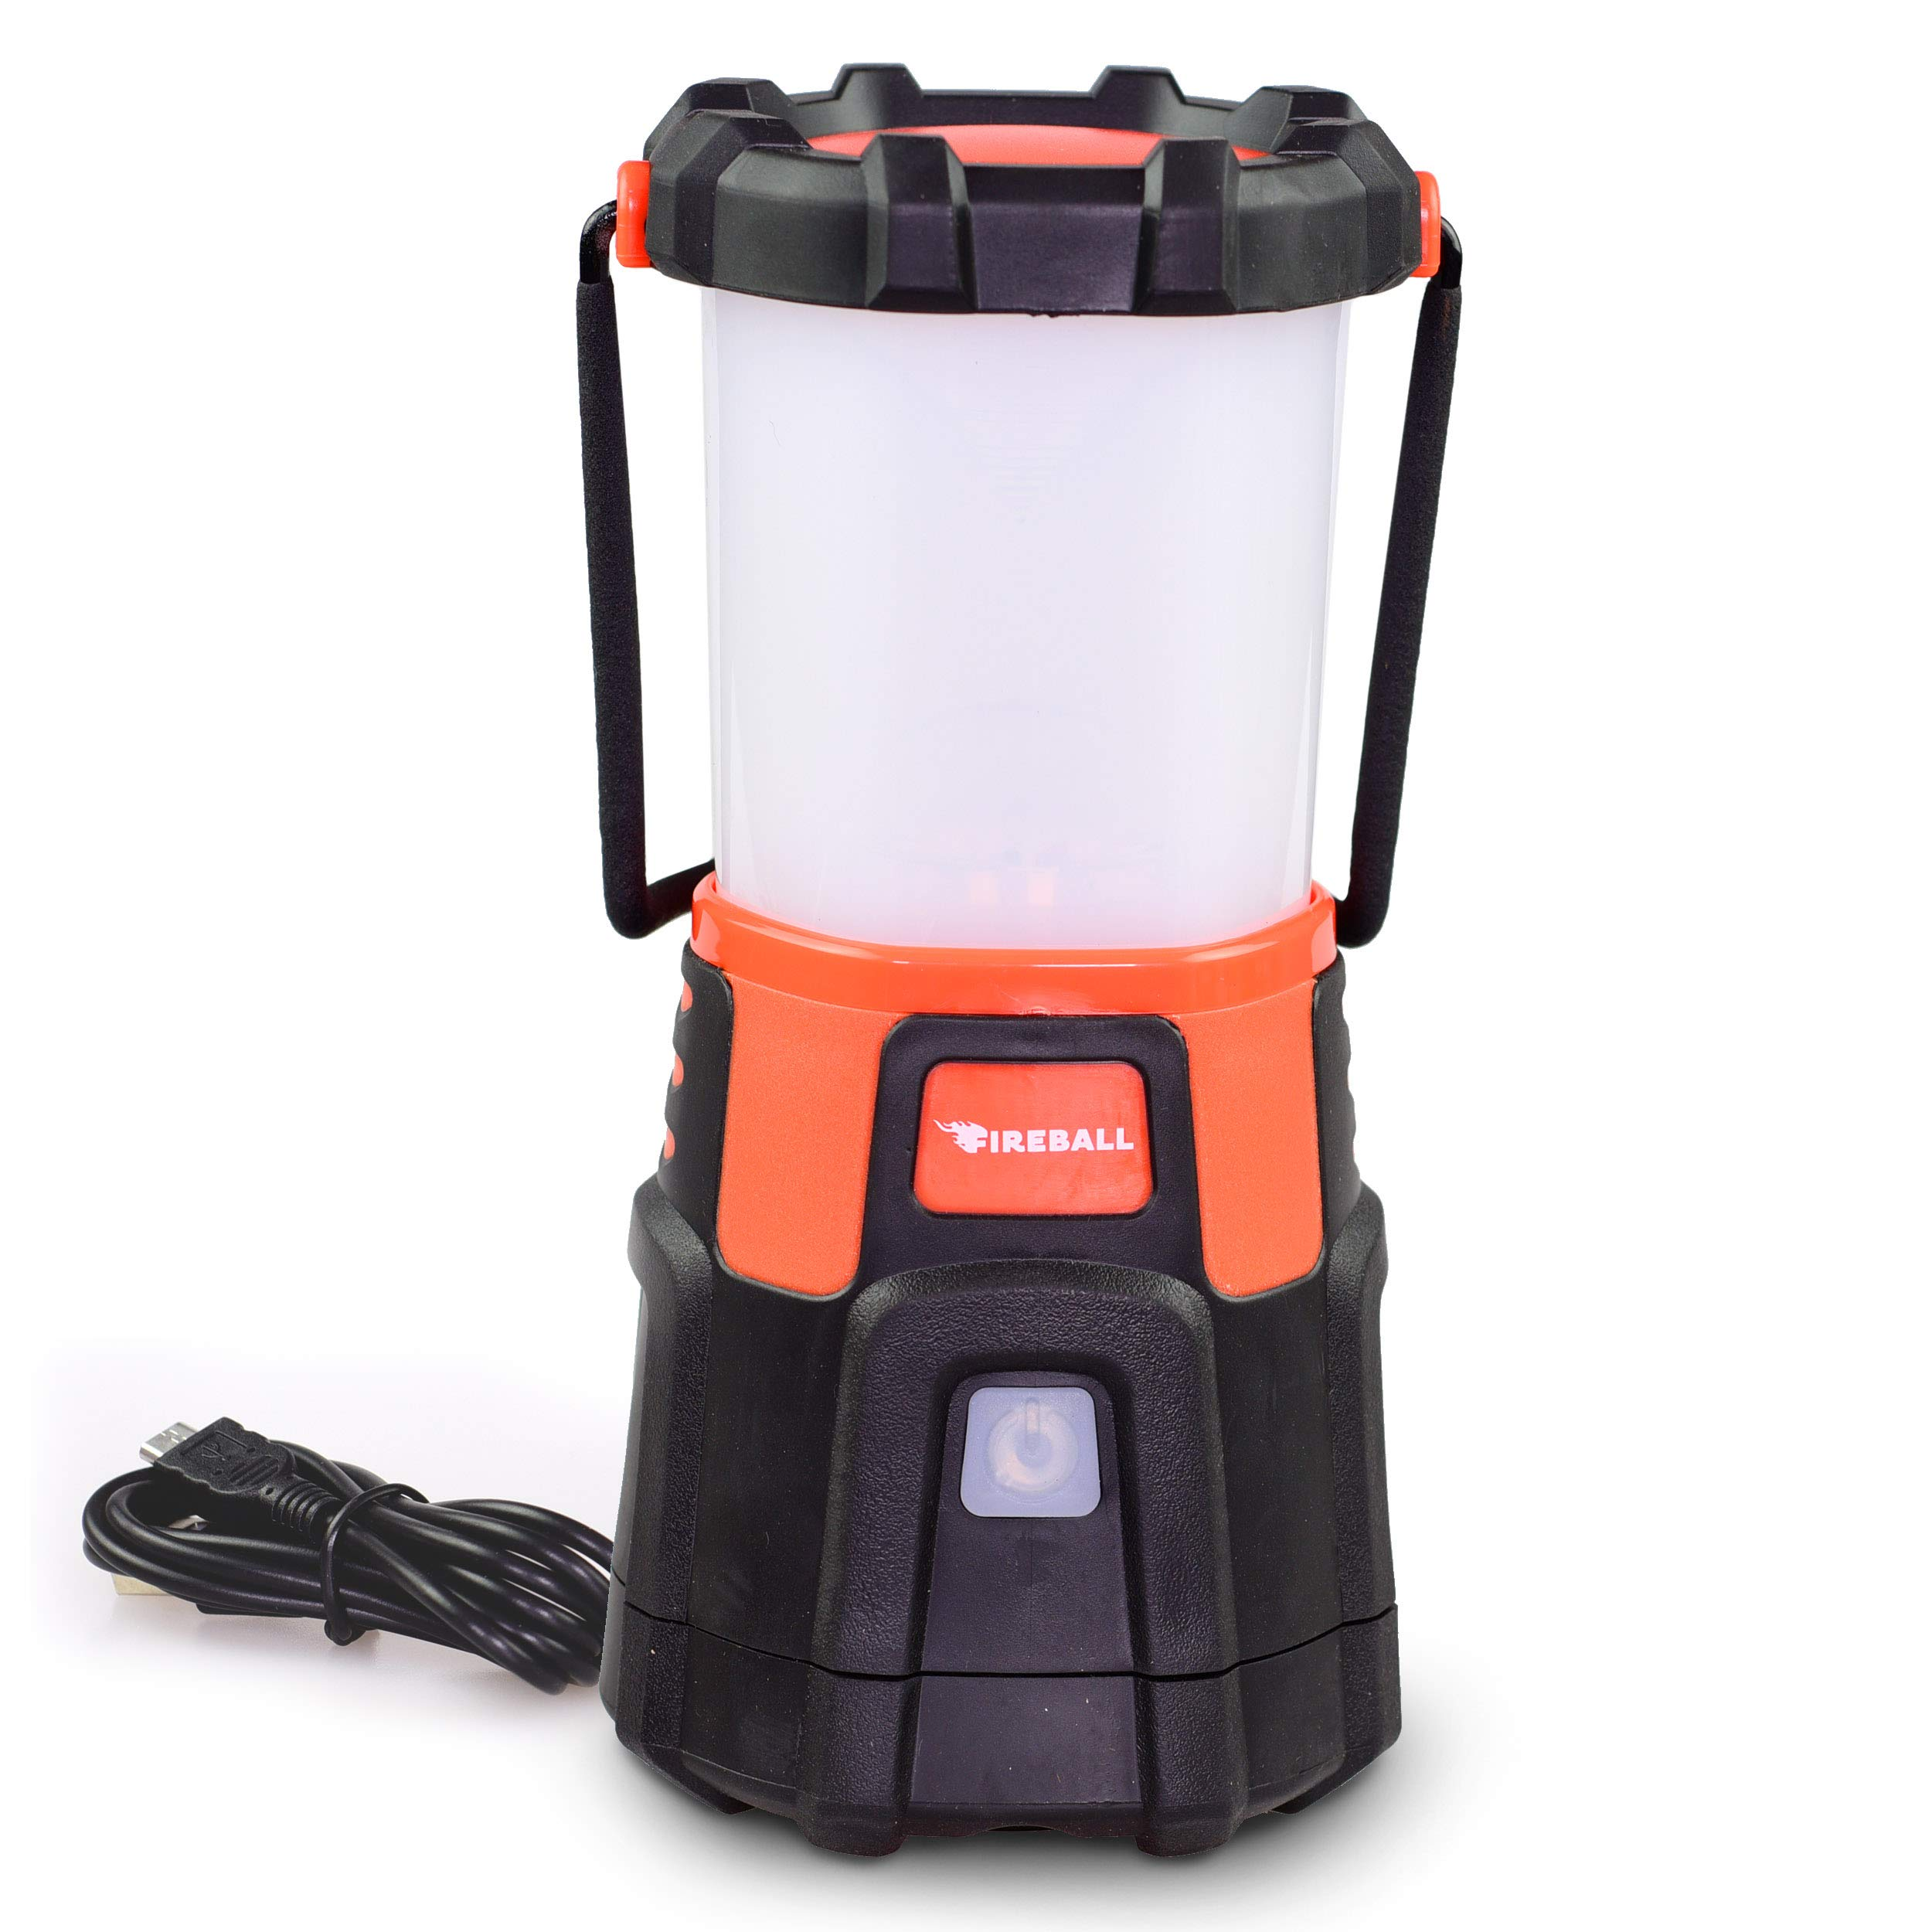 Blazin' Fireball | Brightest USB Rechargeable Lantern LED | Storm, Hurricane, Emergency Light | Power Outage | Battery Bank for Phones | Rechargeable Lamps | 1000 Lumen Light by Blazin